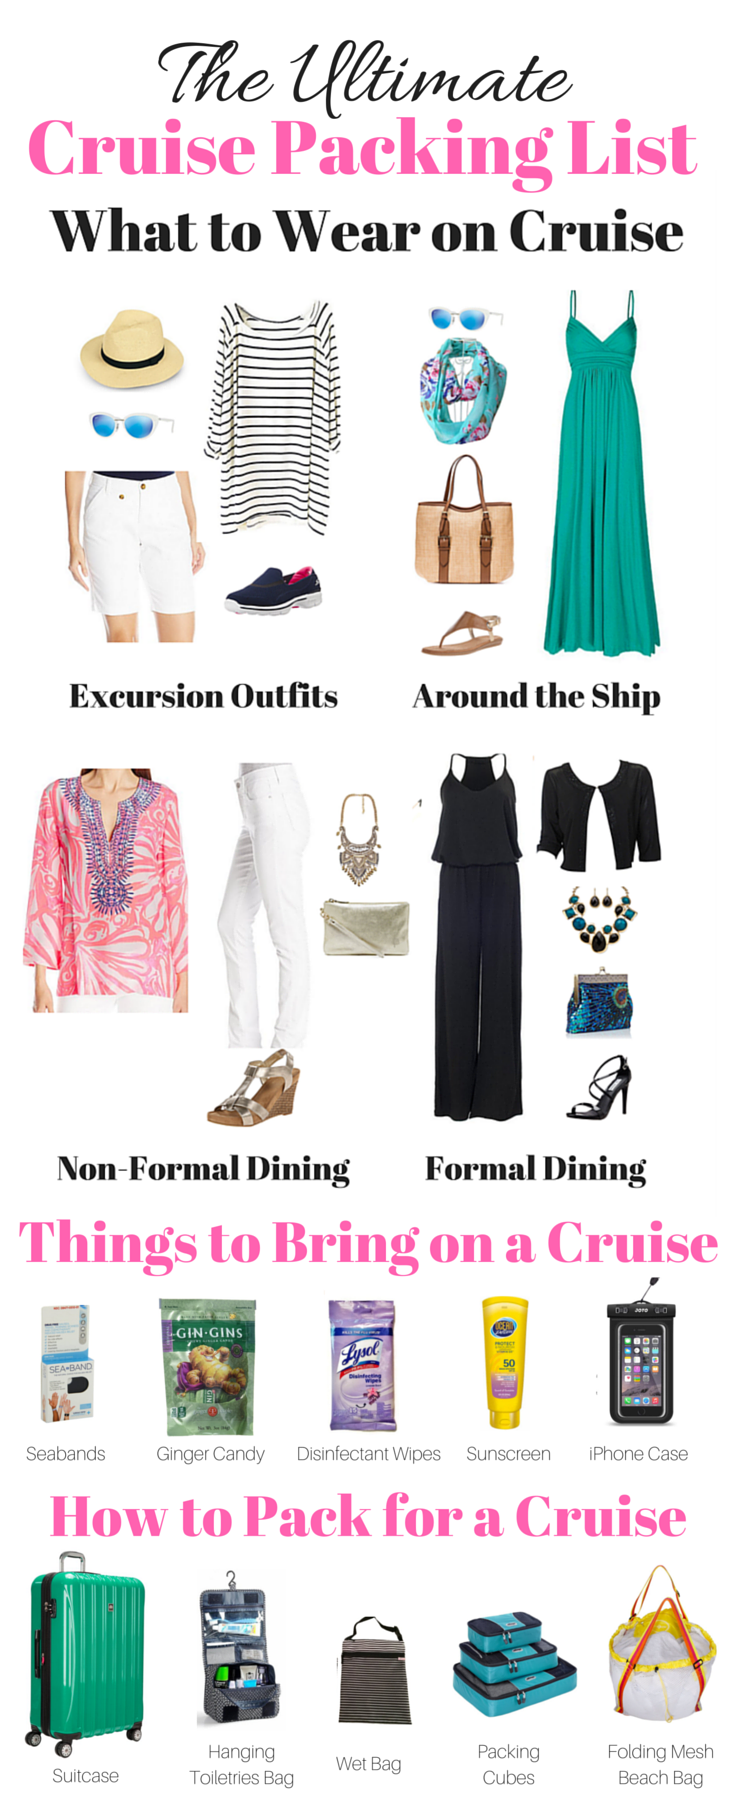 The Ultimate Cruise Packing List Downloadable PDF Checklist